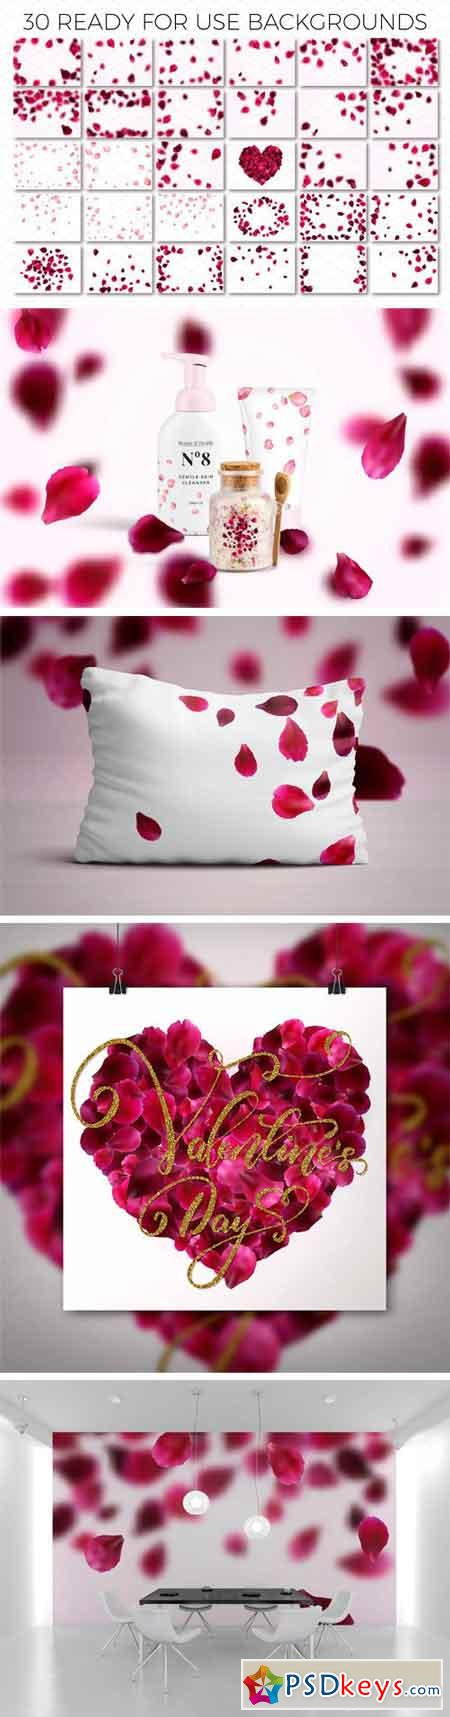 Rose Petals Backgrounds Constructor 1213371